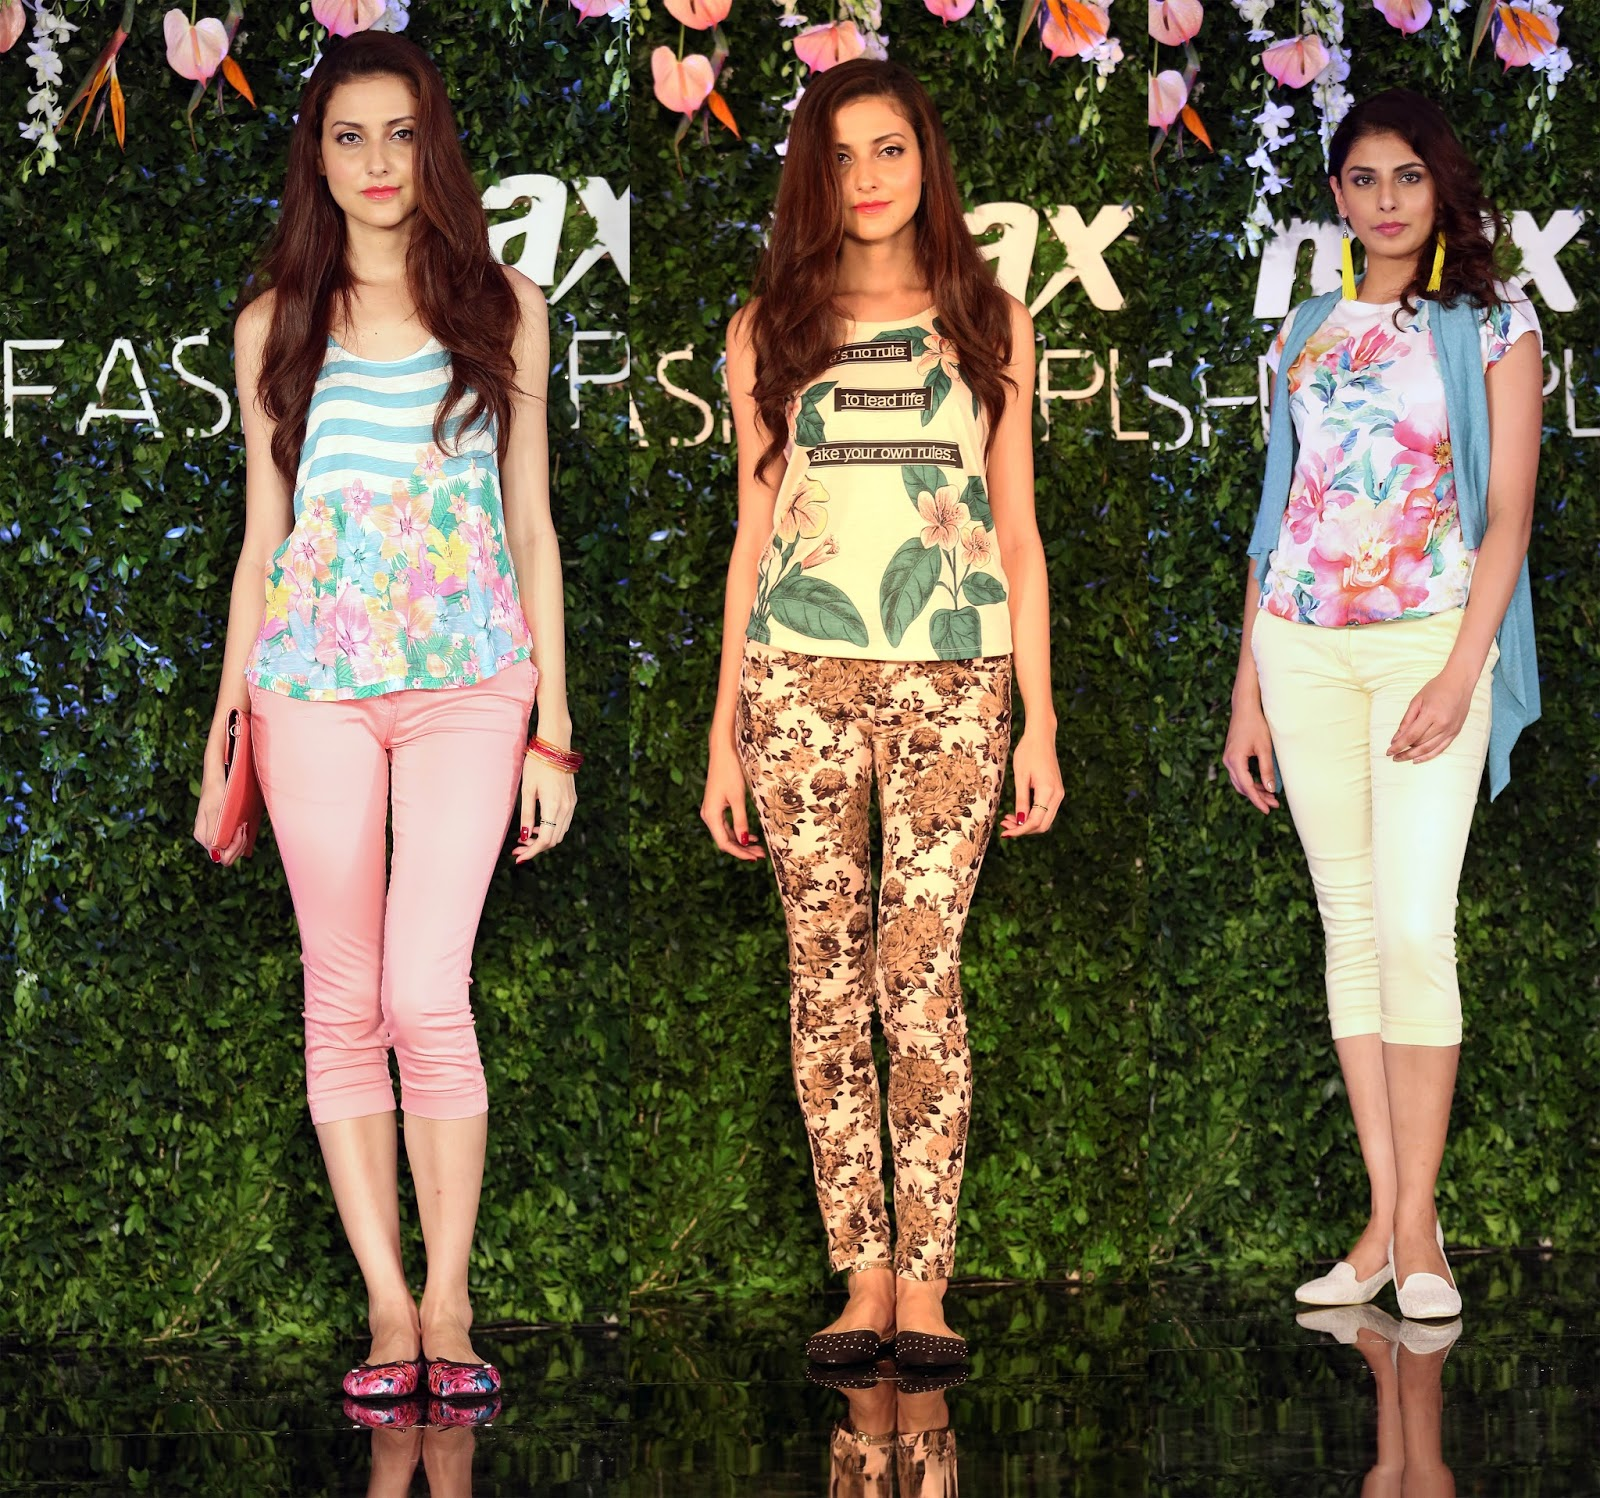 max fashion play, max spring summer 15, max fashion, tropical prints